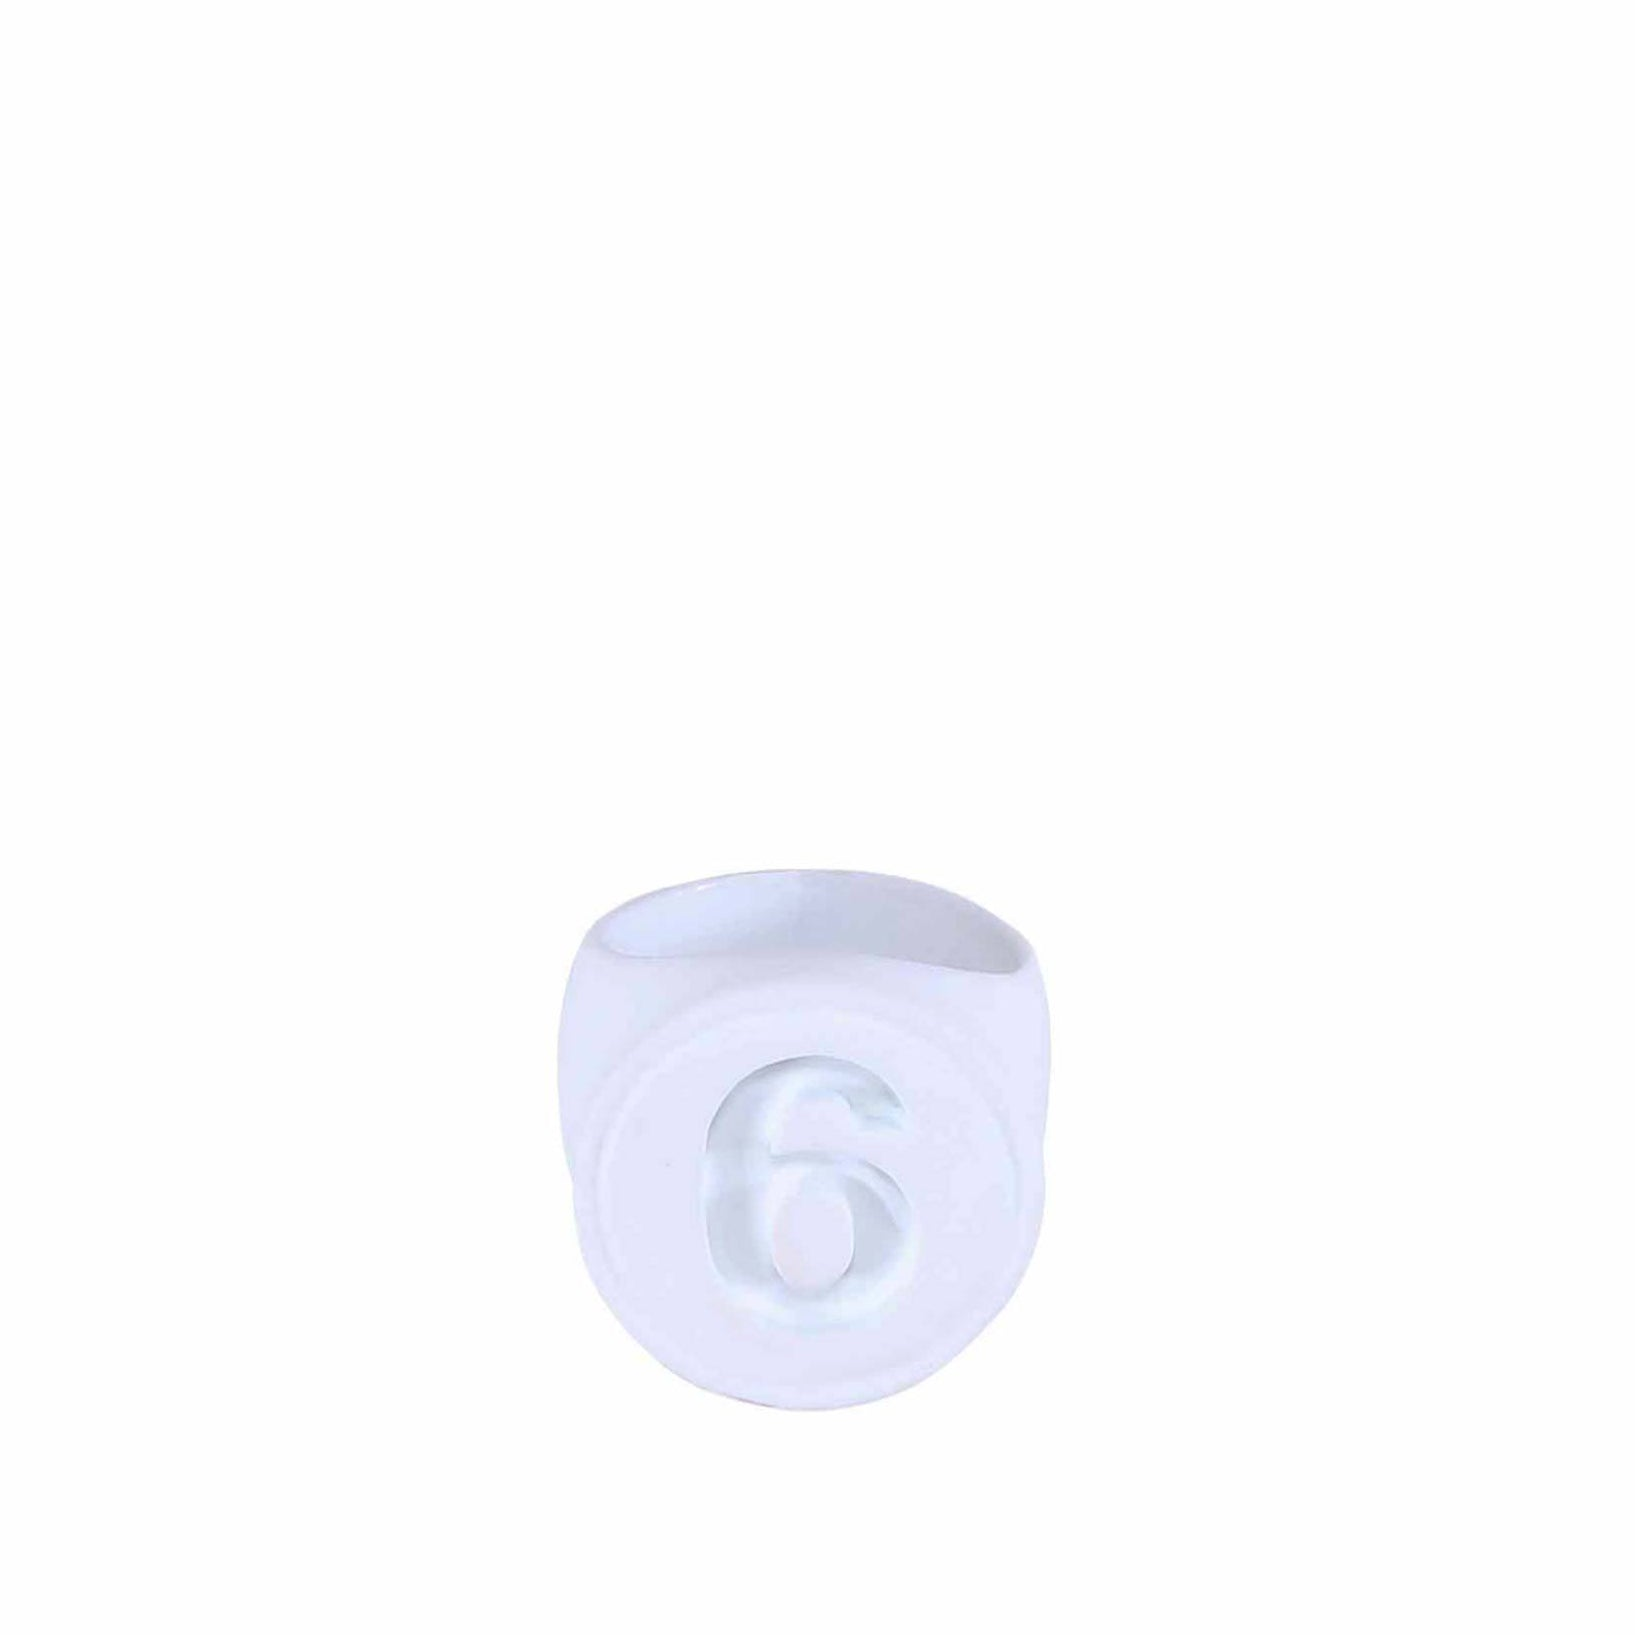 new concept c7d89 7c1a2 Mm6 Maison Margiela 6 Ring in White